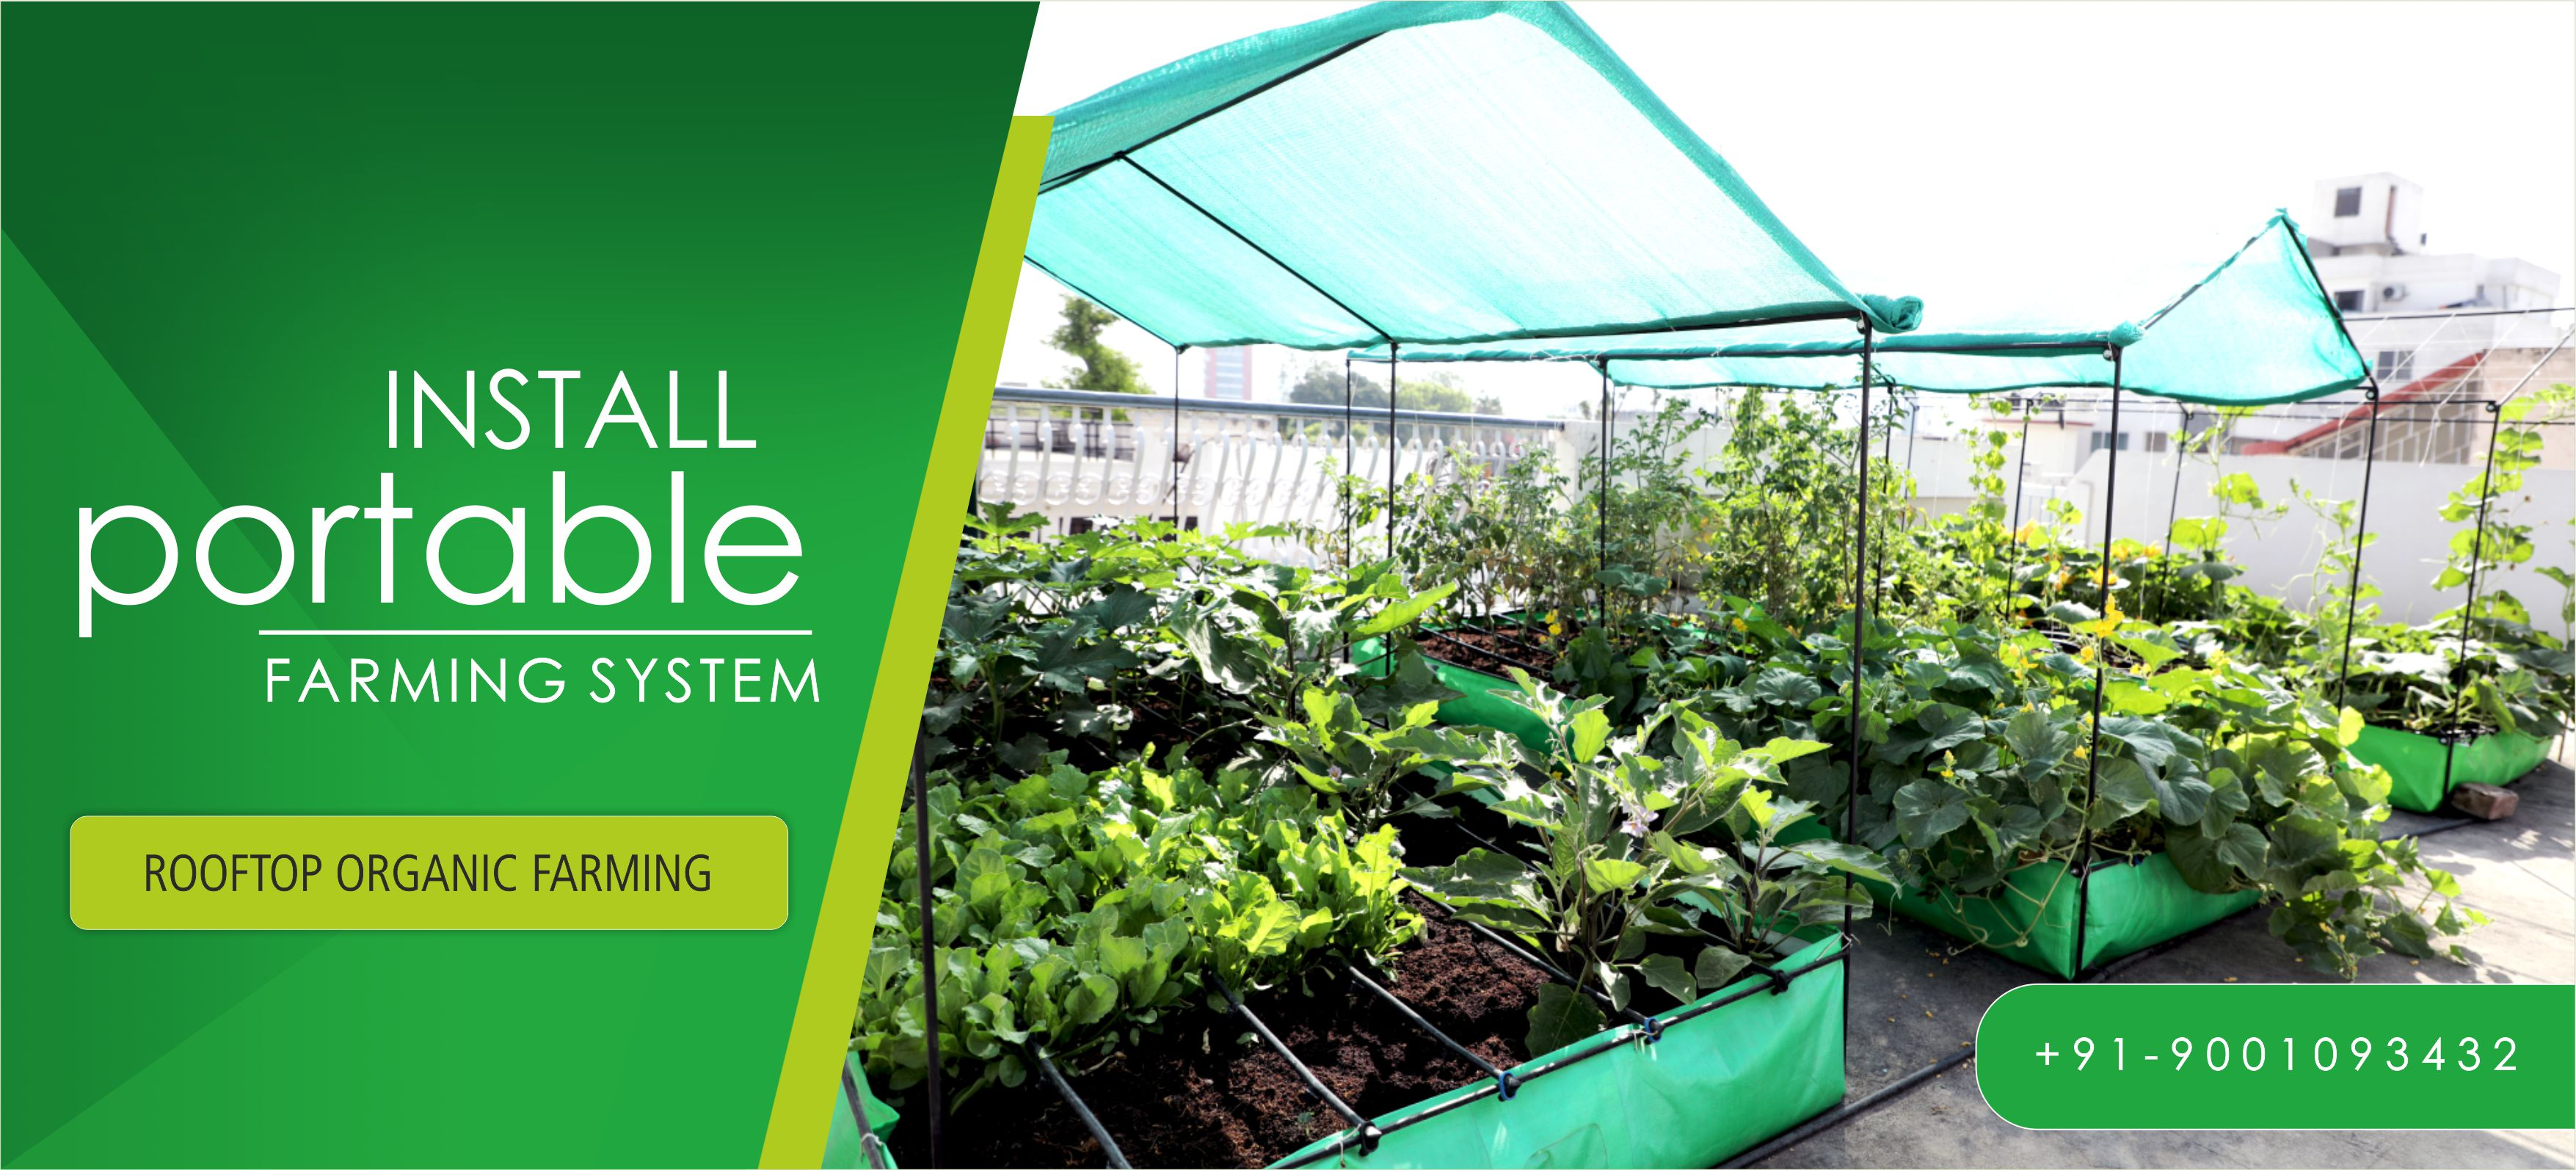 Organic Farming In Jaipur Rooftop Kitchen Garden Thelivinggreens Com